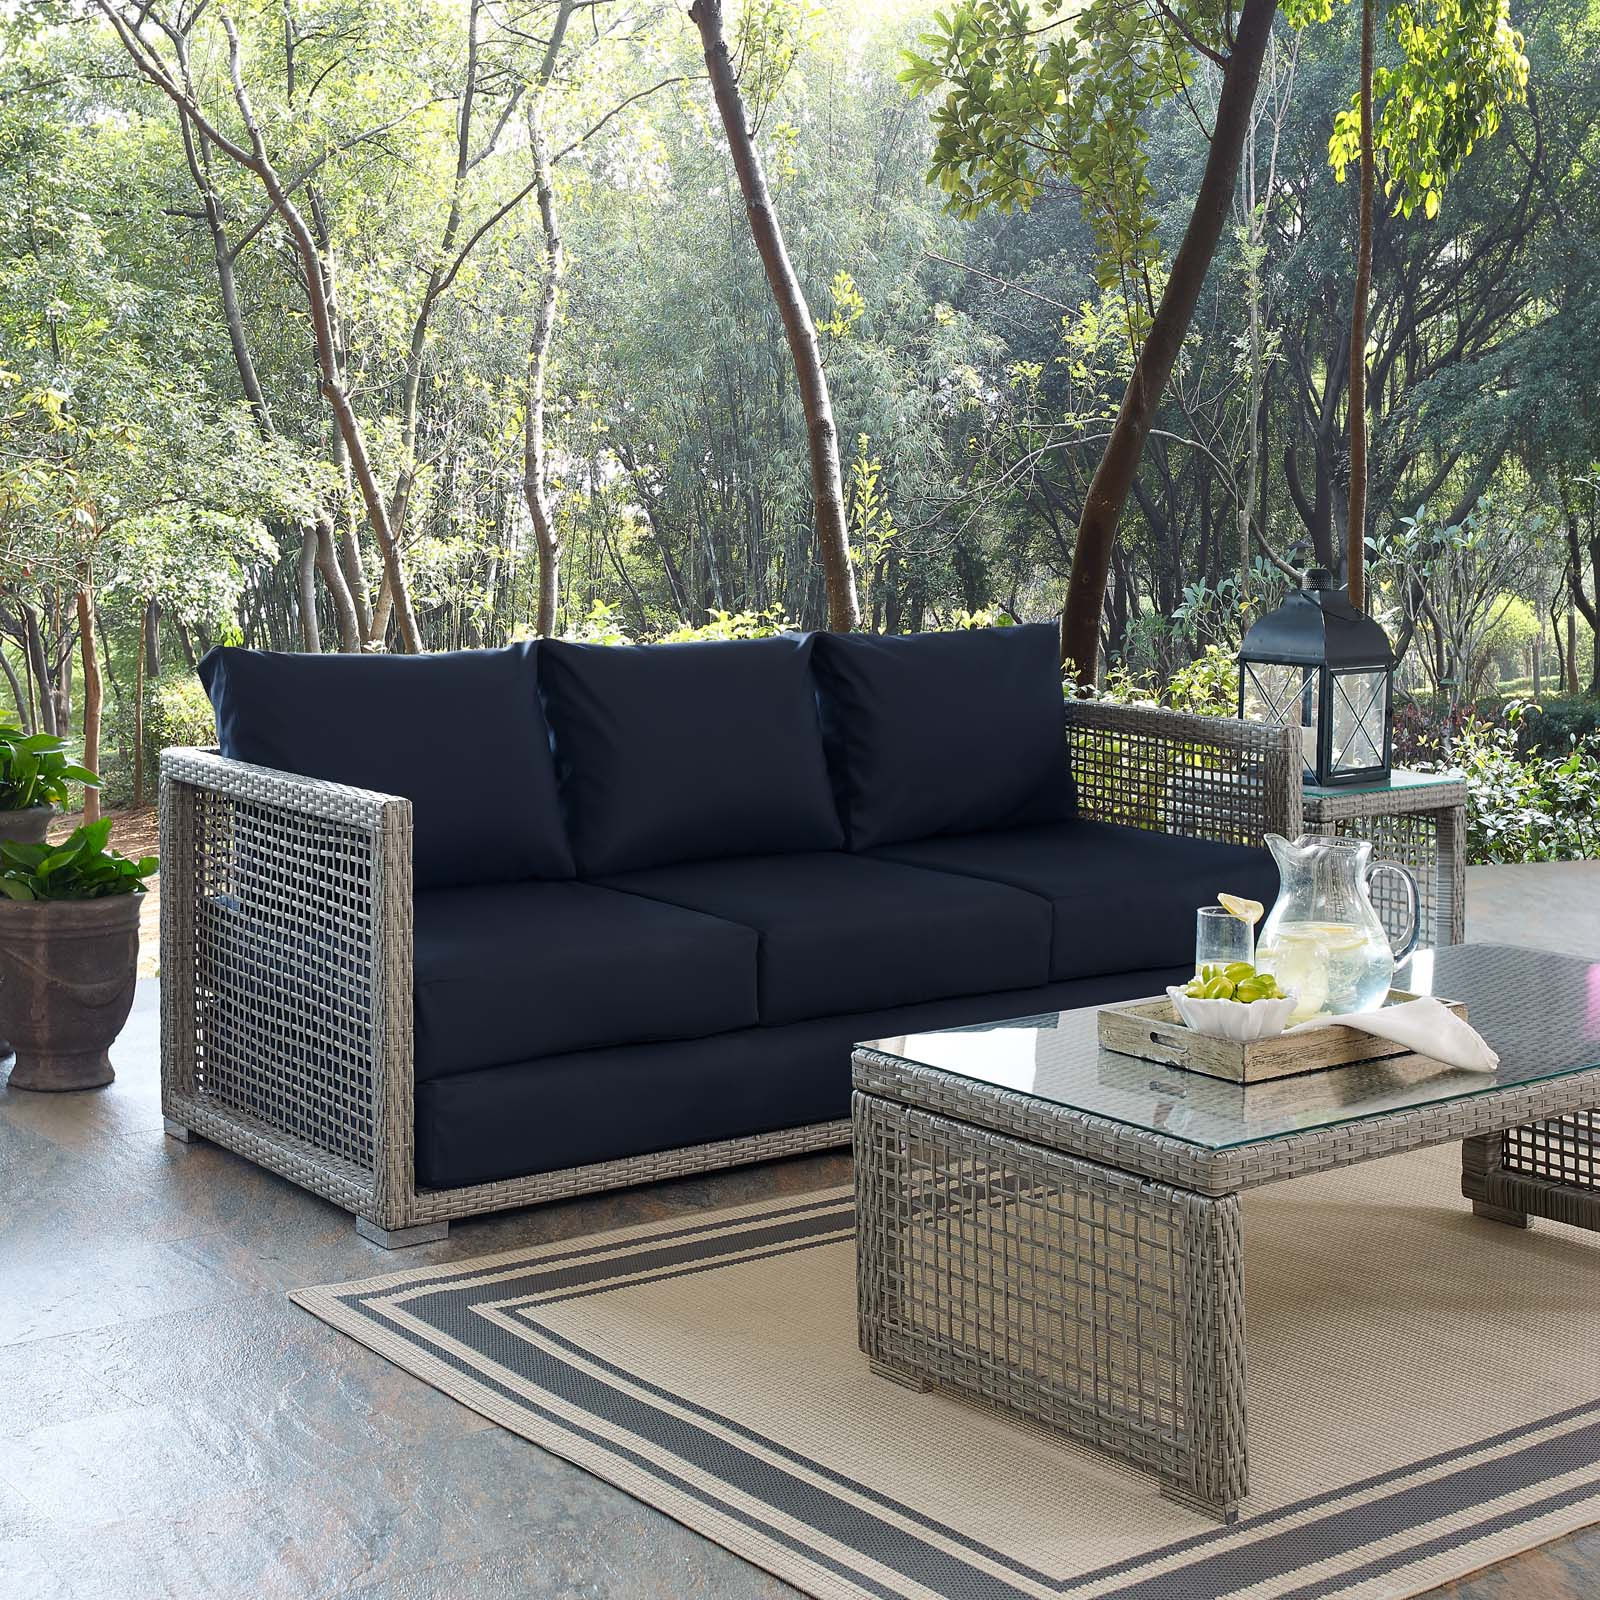 Outdoor Couch Aura Patio Wicker Rattan Sofa In Gray And Navy By Modway